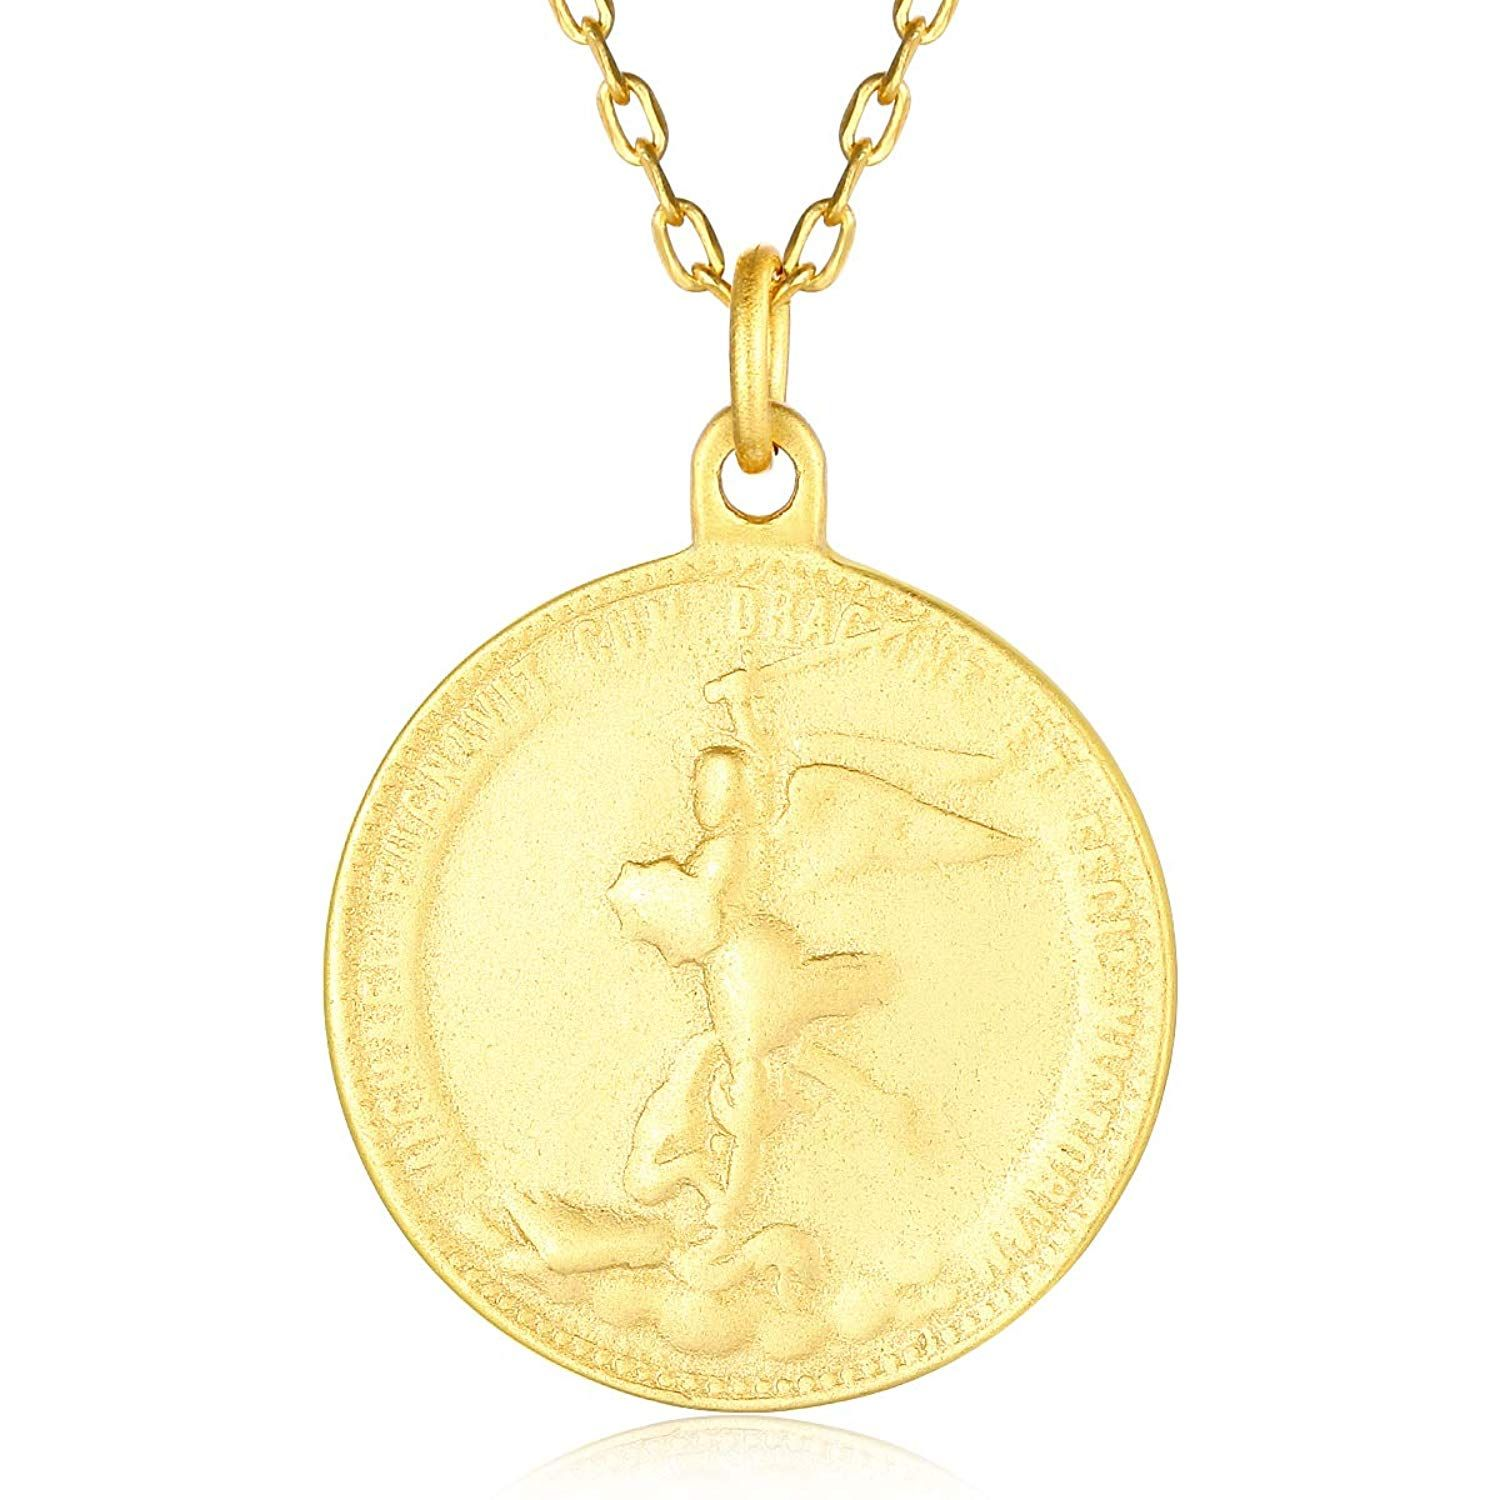 Necklace For Girls Dainty Pendant Necklace Yellow Gold Plated Figure Necklace Small Female Figure Pendant With Rope Gold Plated Chain